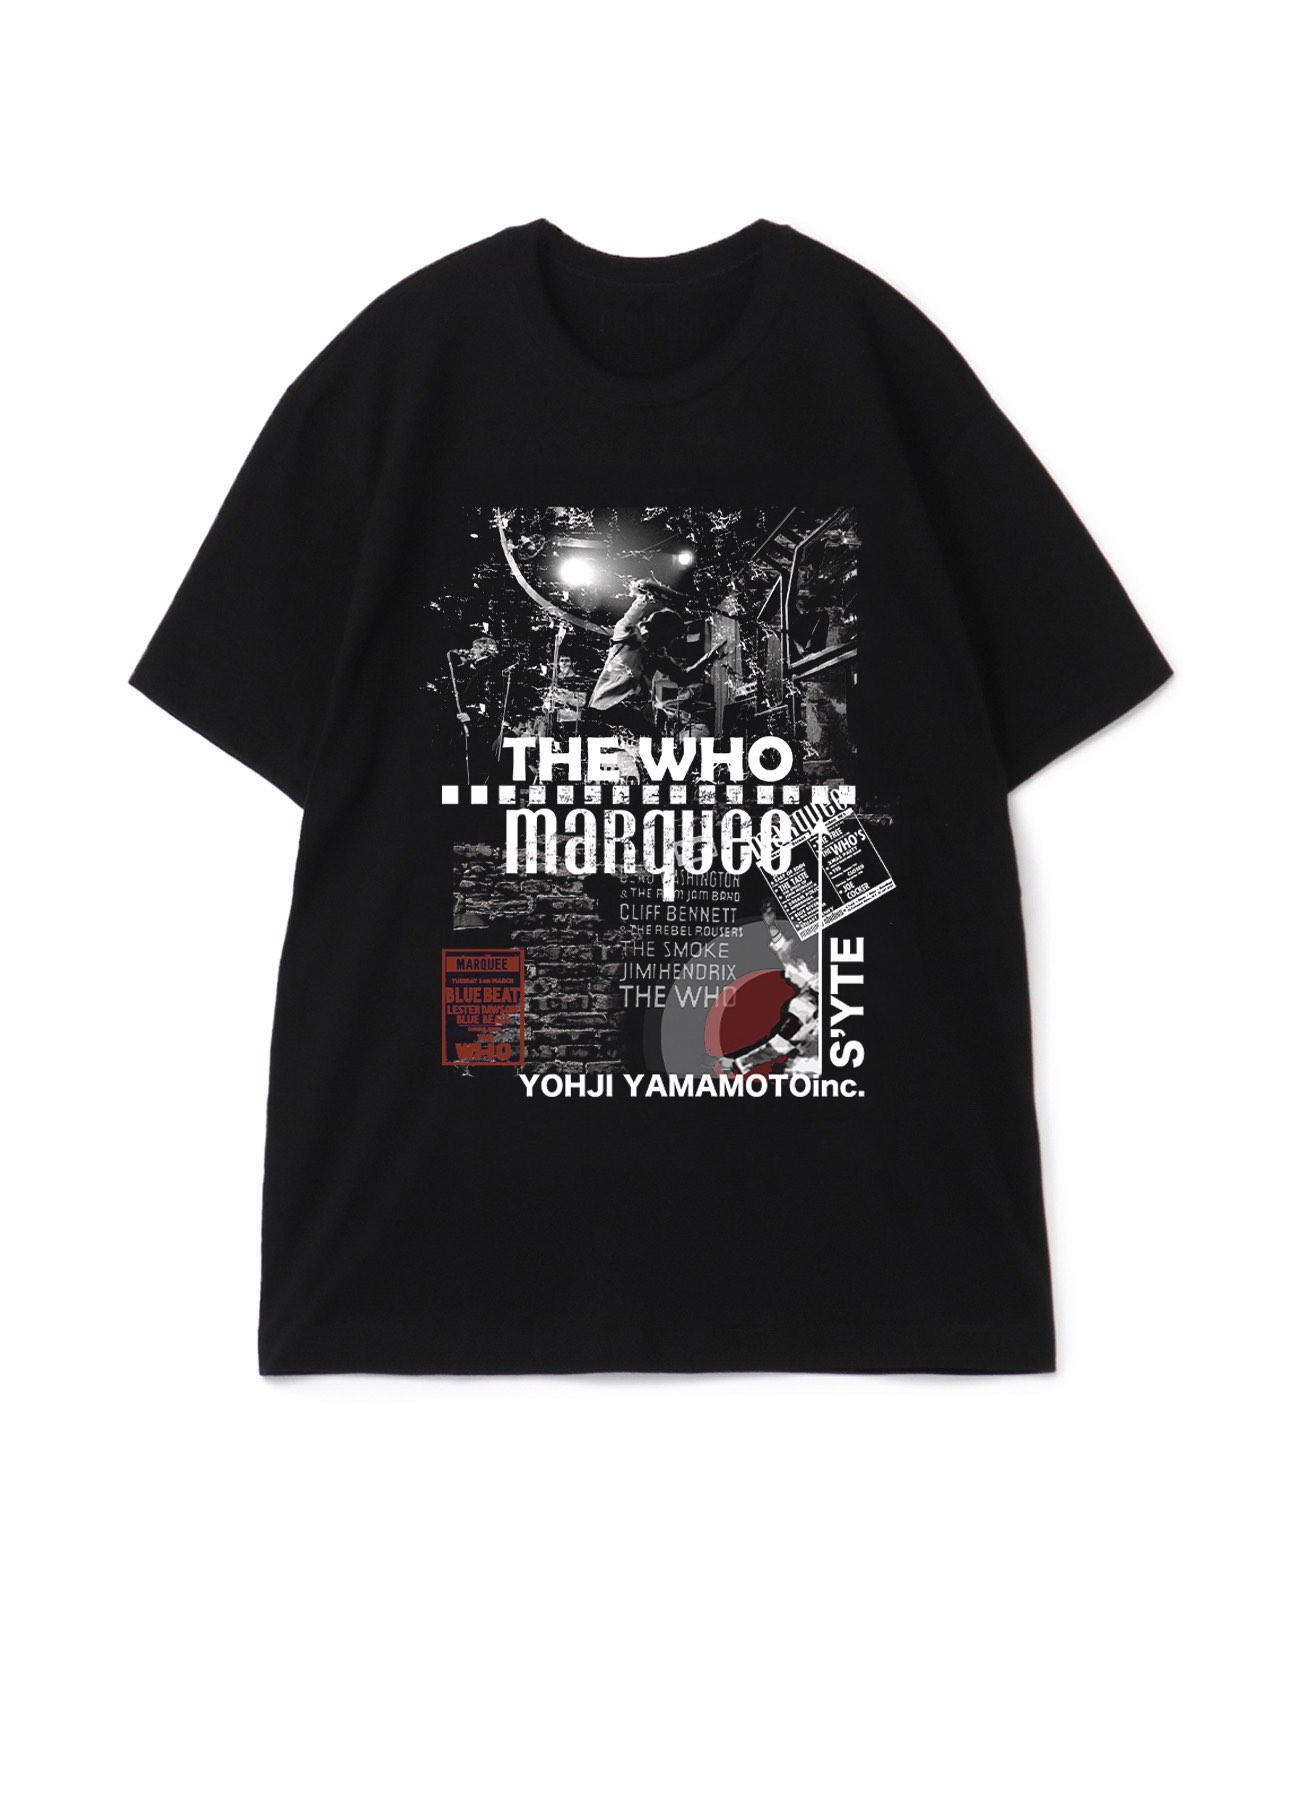 S'YTE × marquee club(R) Break The Instrument T-shirt